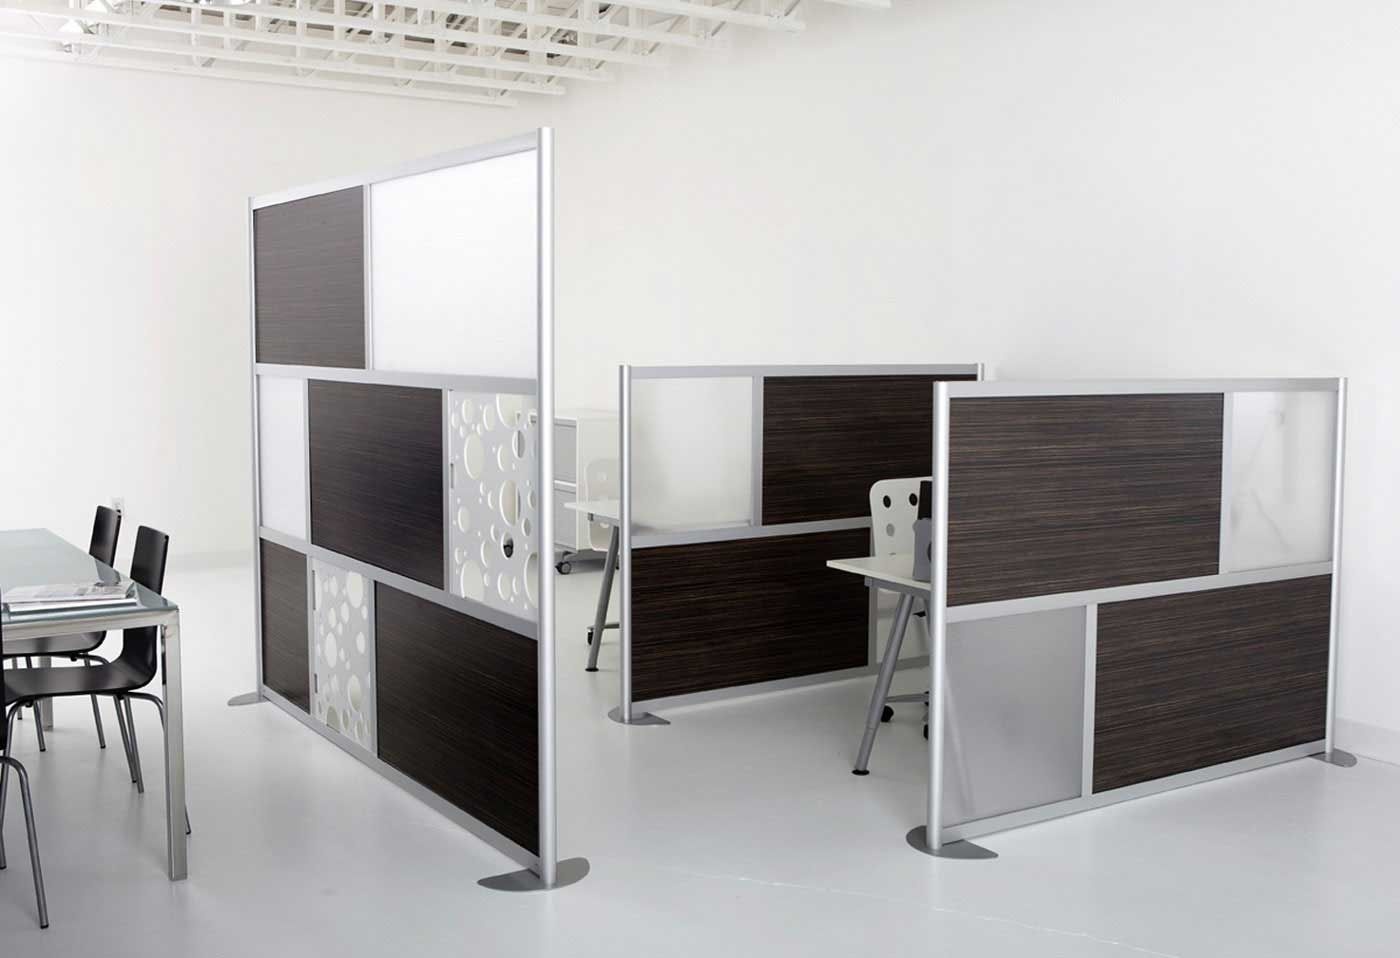 Glass Wall Divider Magnificent 25 Wall Dividers For Office Design Ideas Of Glass